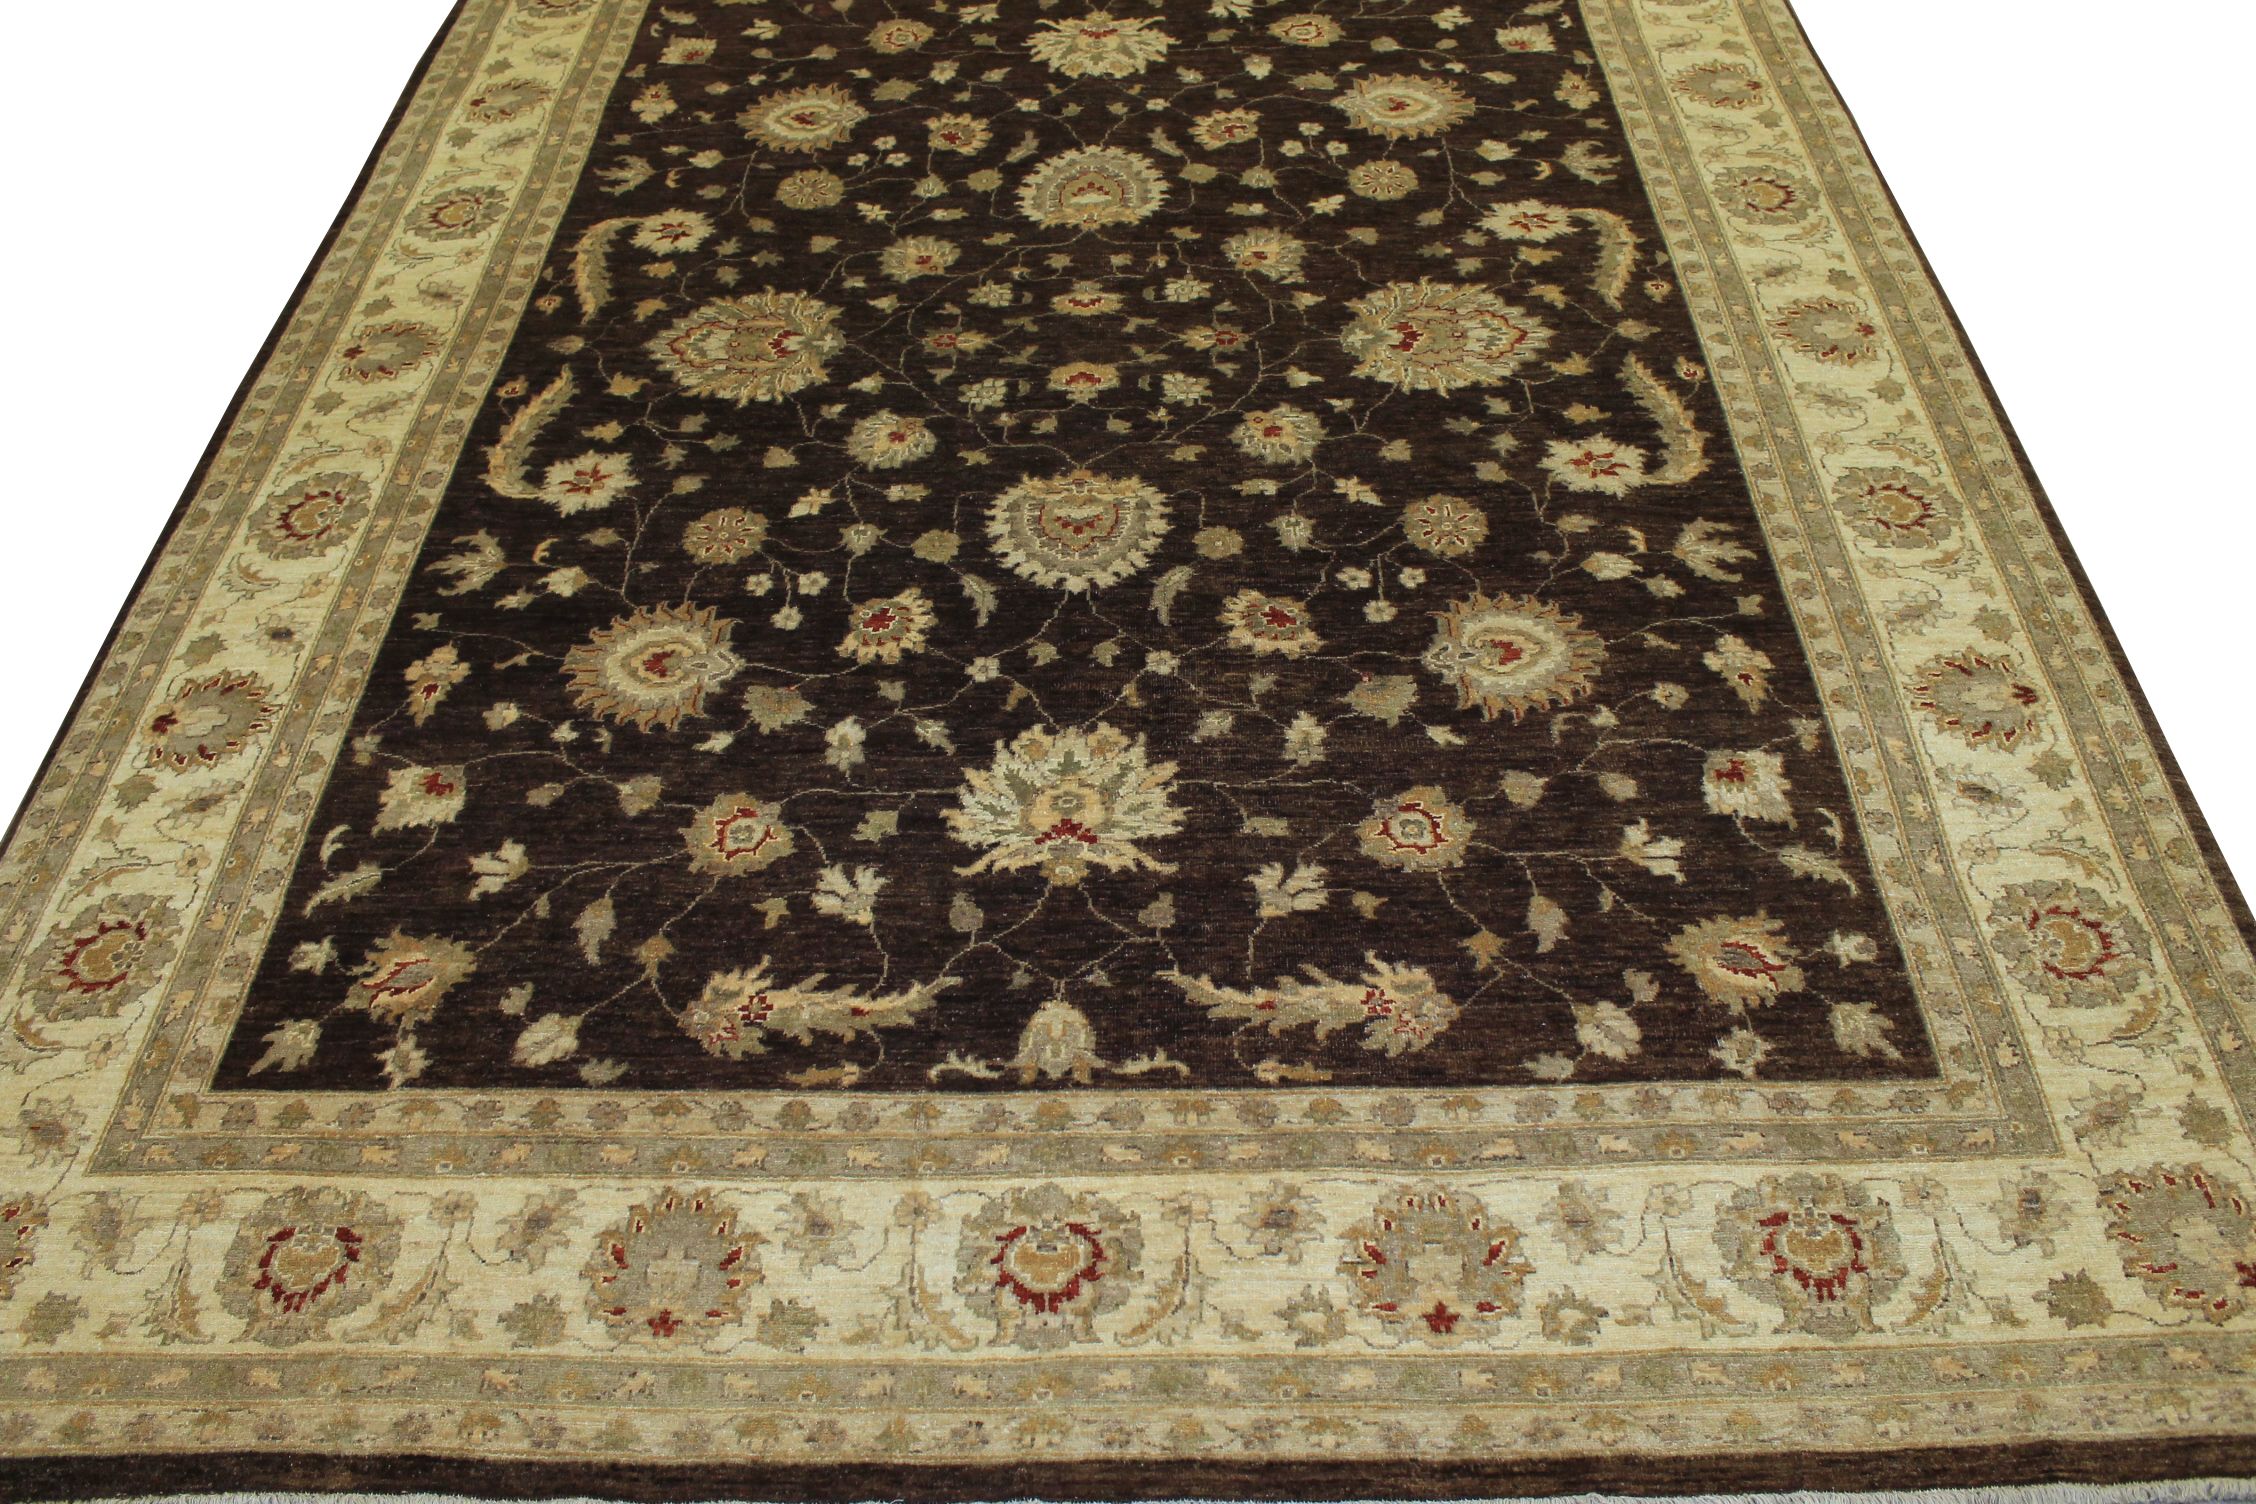 9x12 Peshawar Hand Knotted Wool Area Rug - MR11856